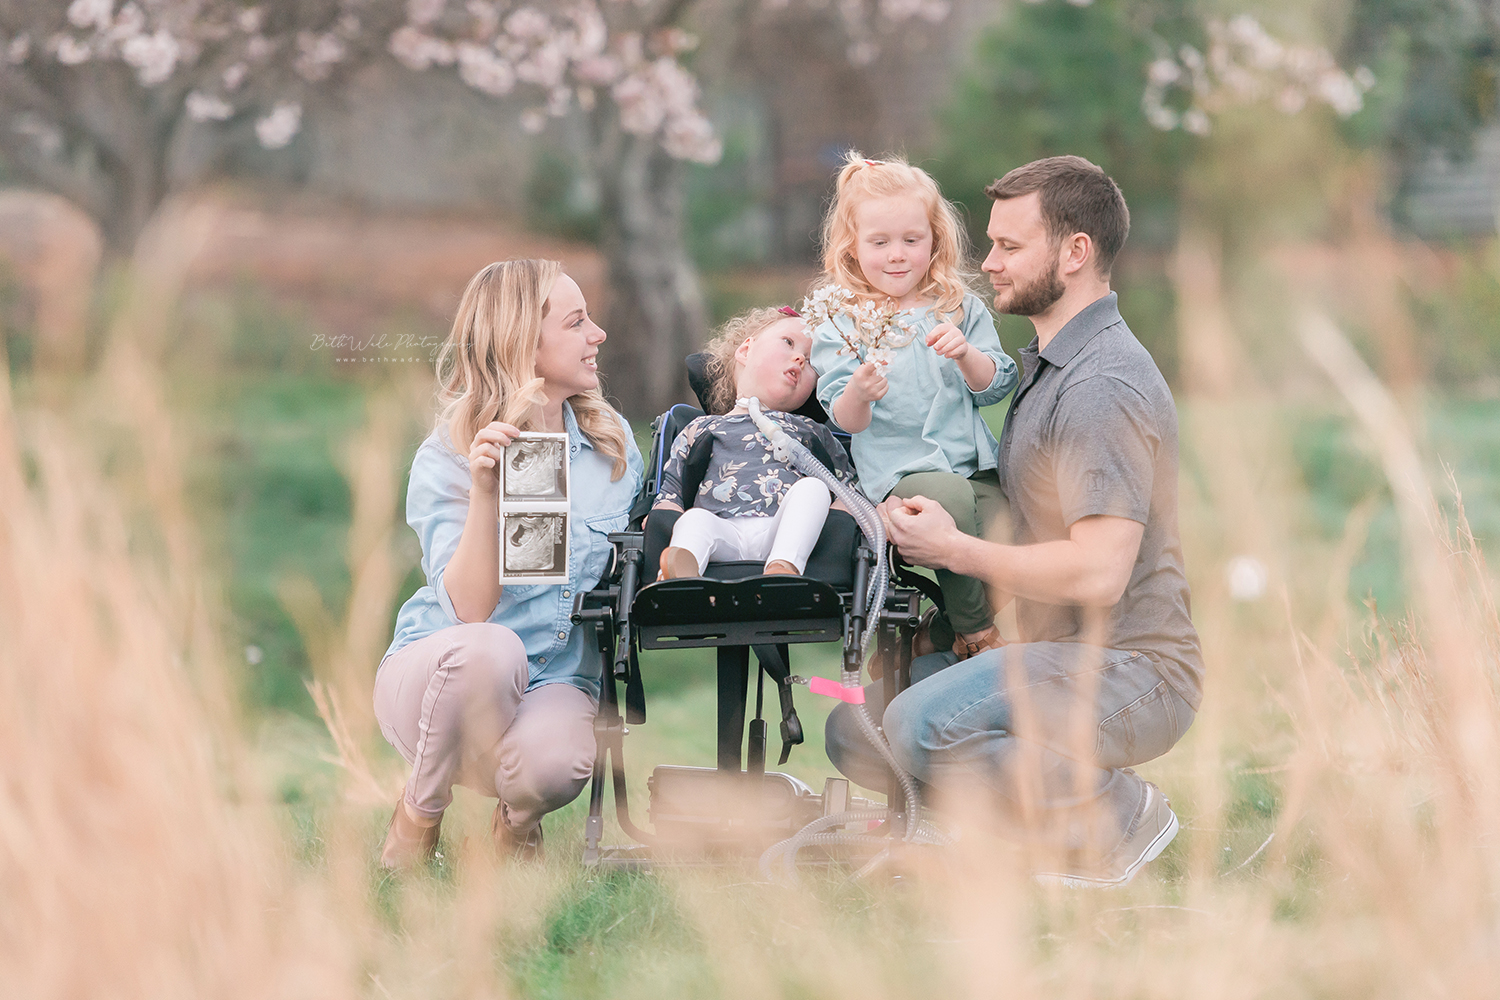 life come full circle spring photos {steele creek charlotte baby photographer}